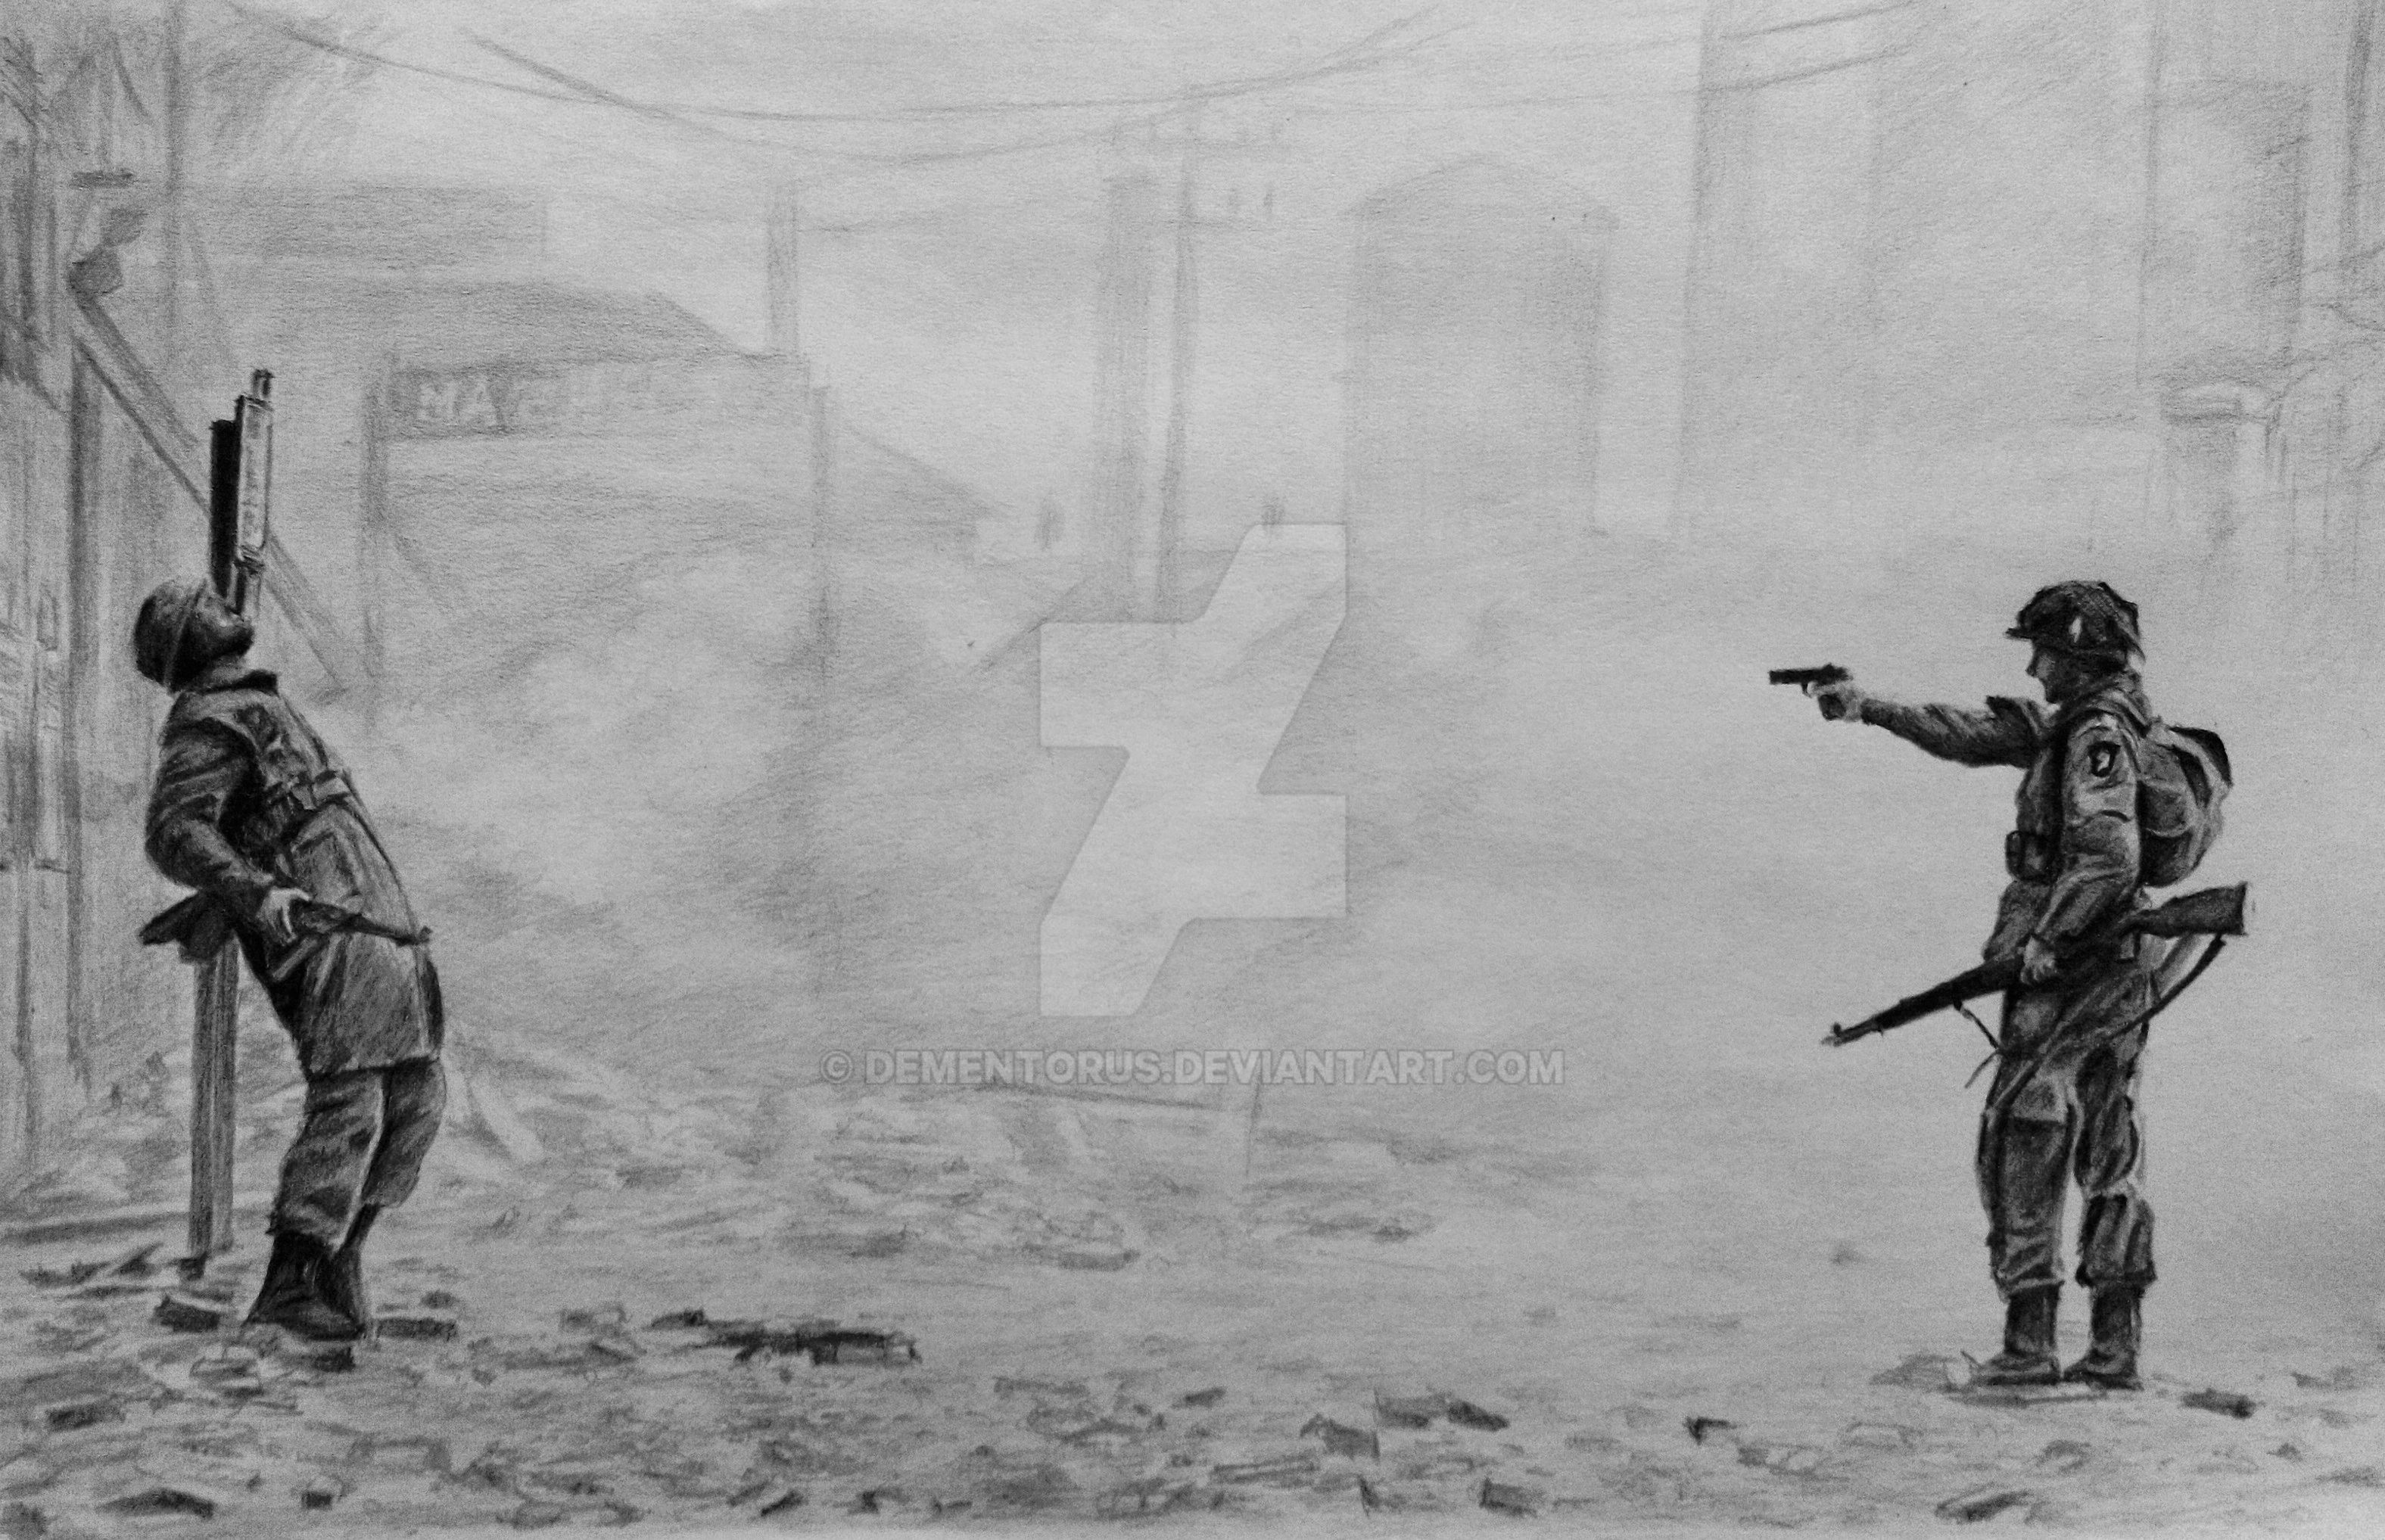 Band of Brothers battle of Carentan by Dementorus